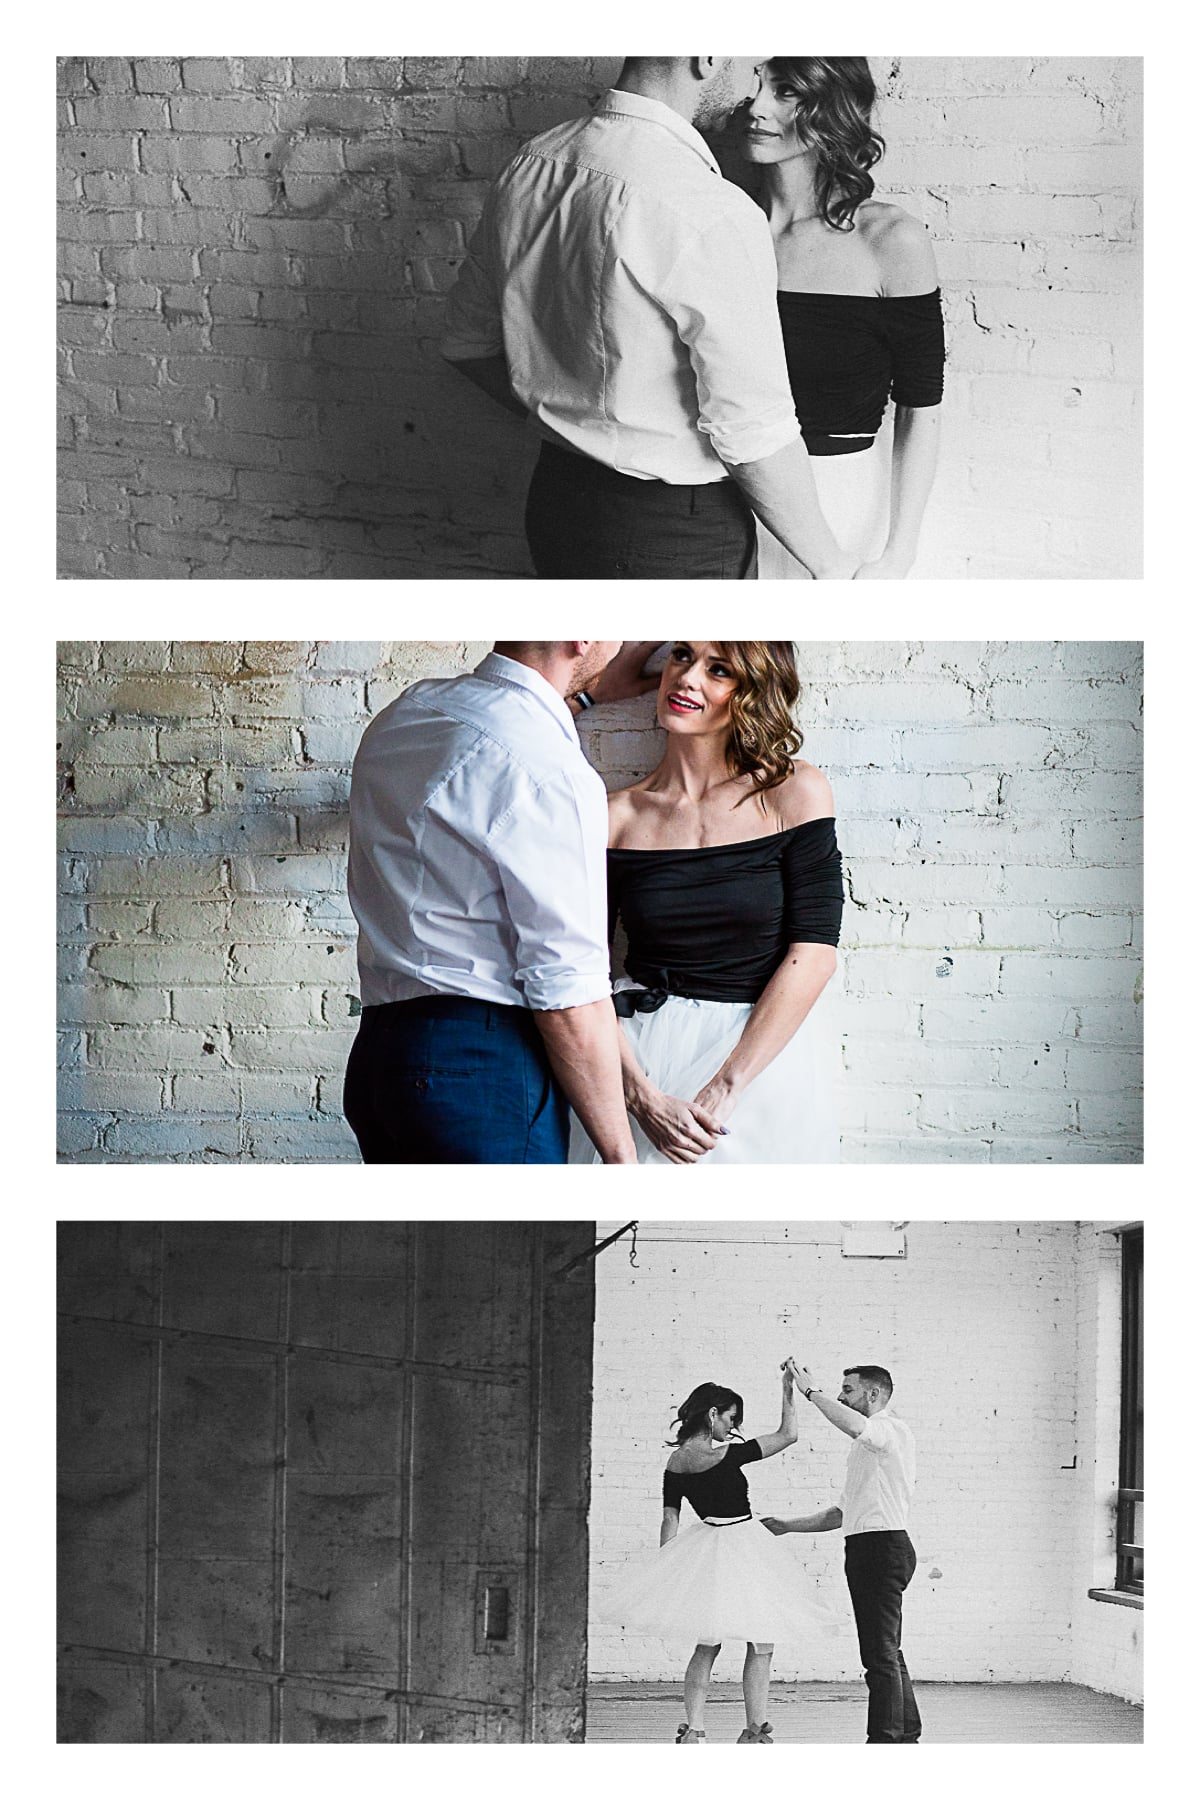 intimate couples photography pittsburgh